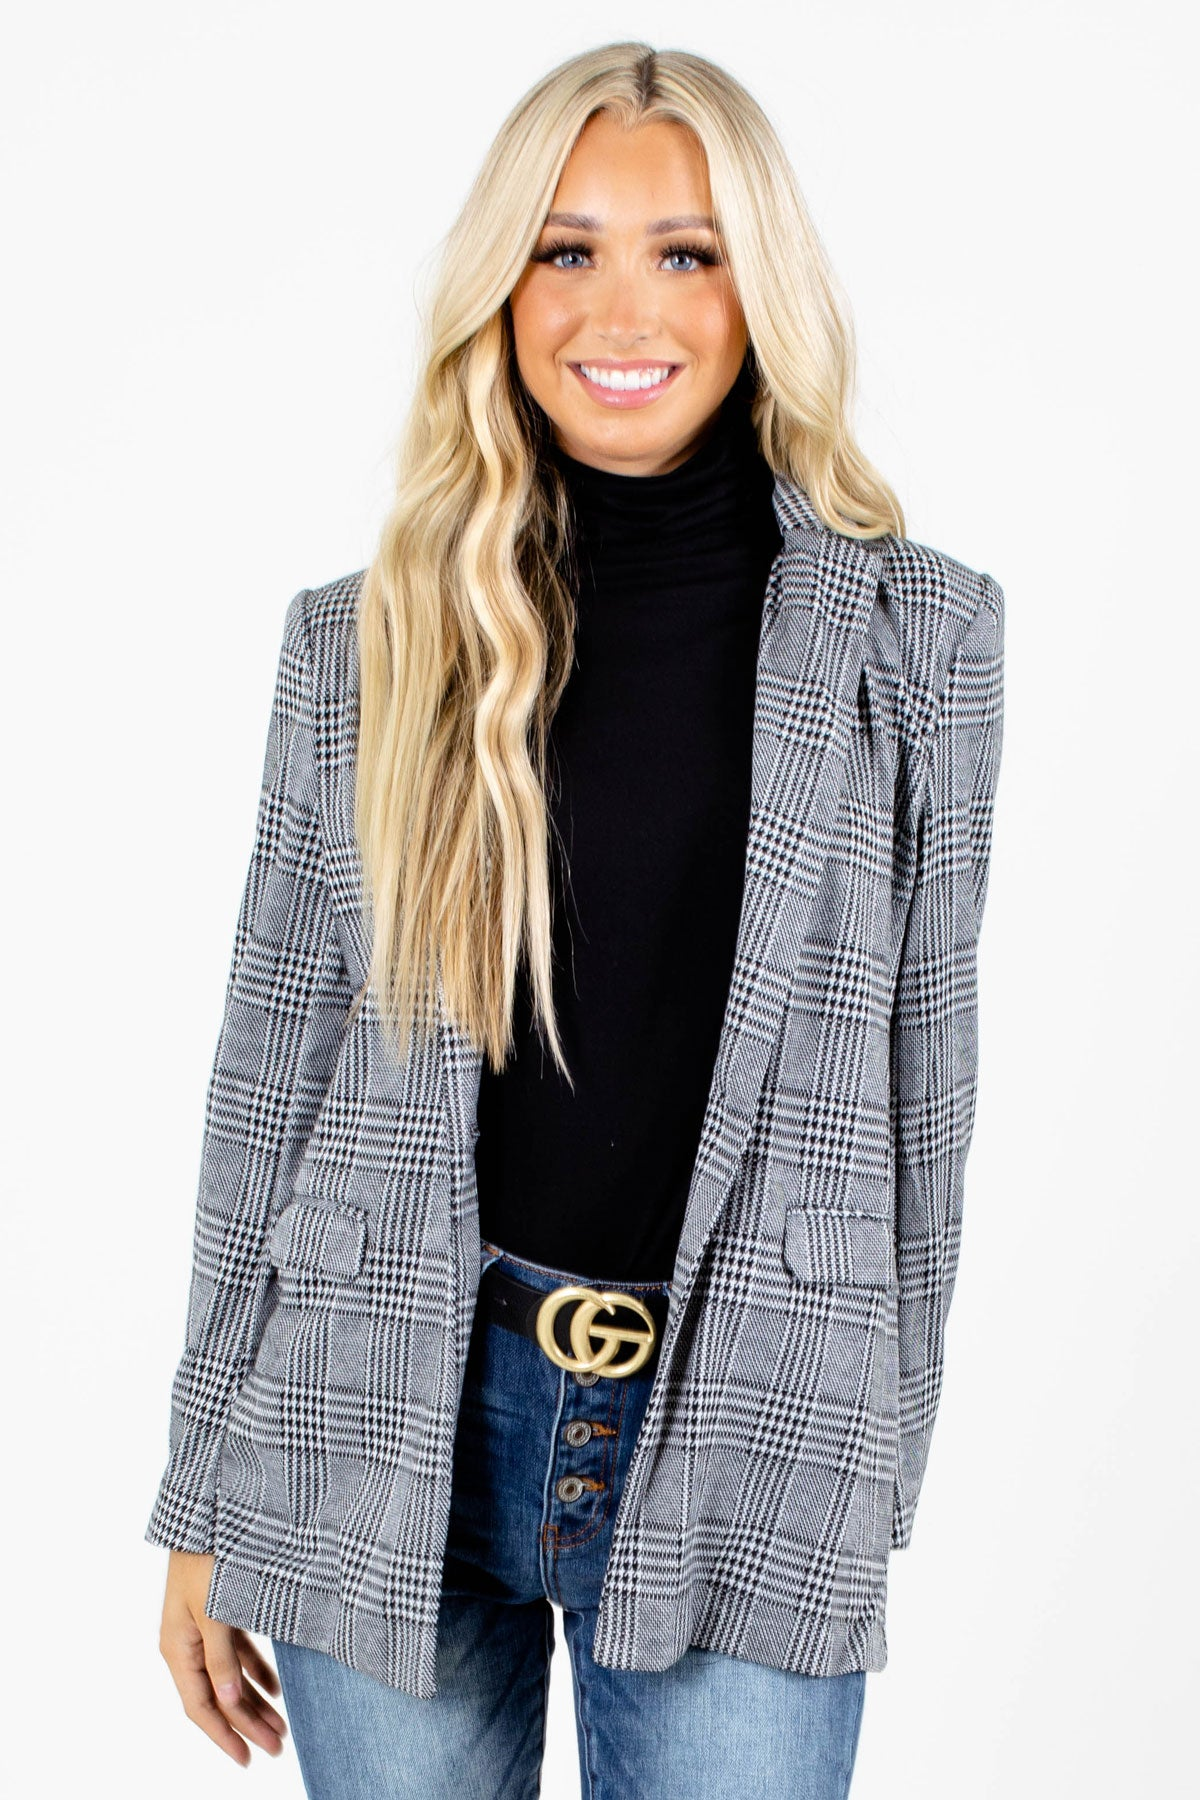 Gray Plaid Patterned Boutique Blazers for Women